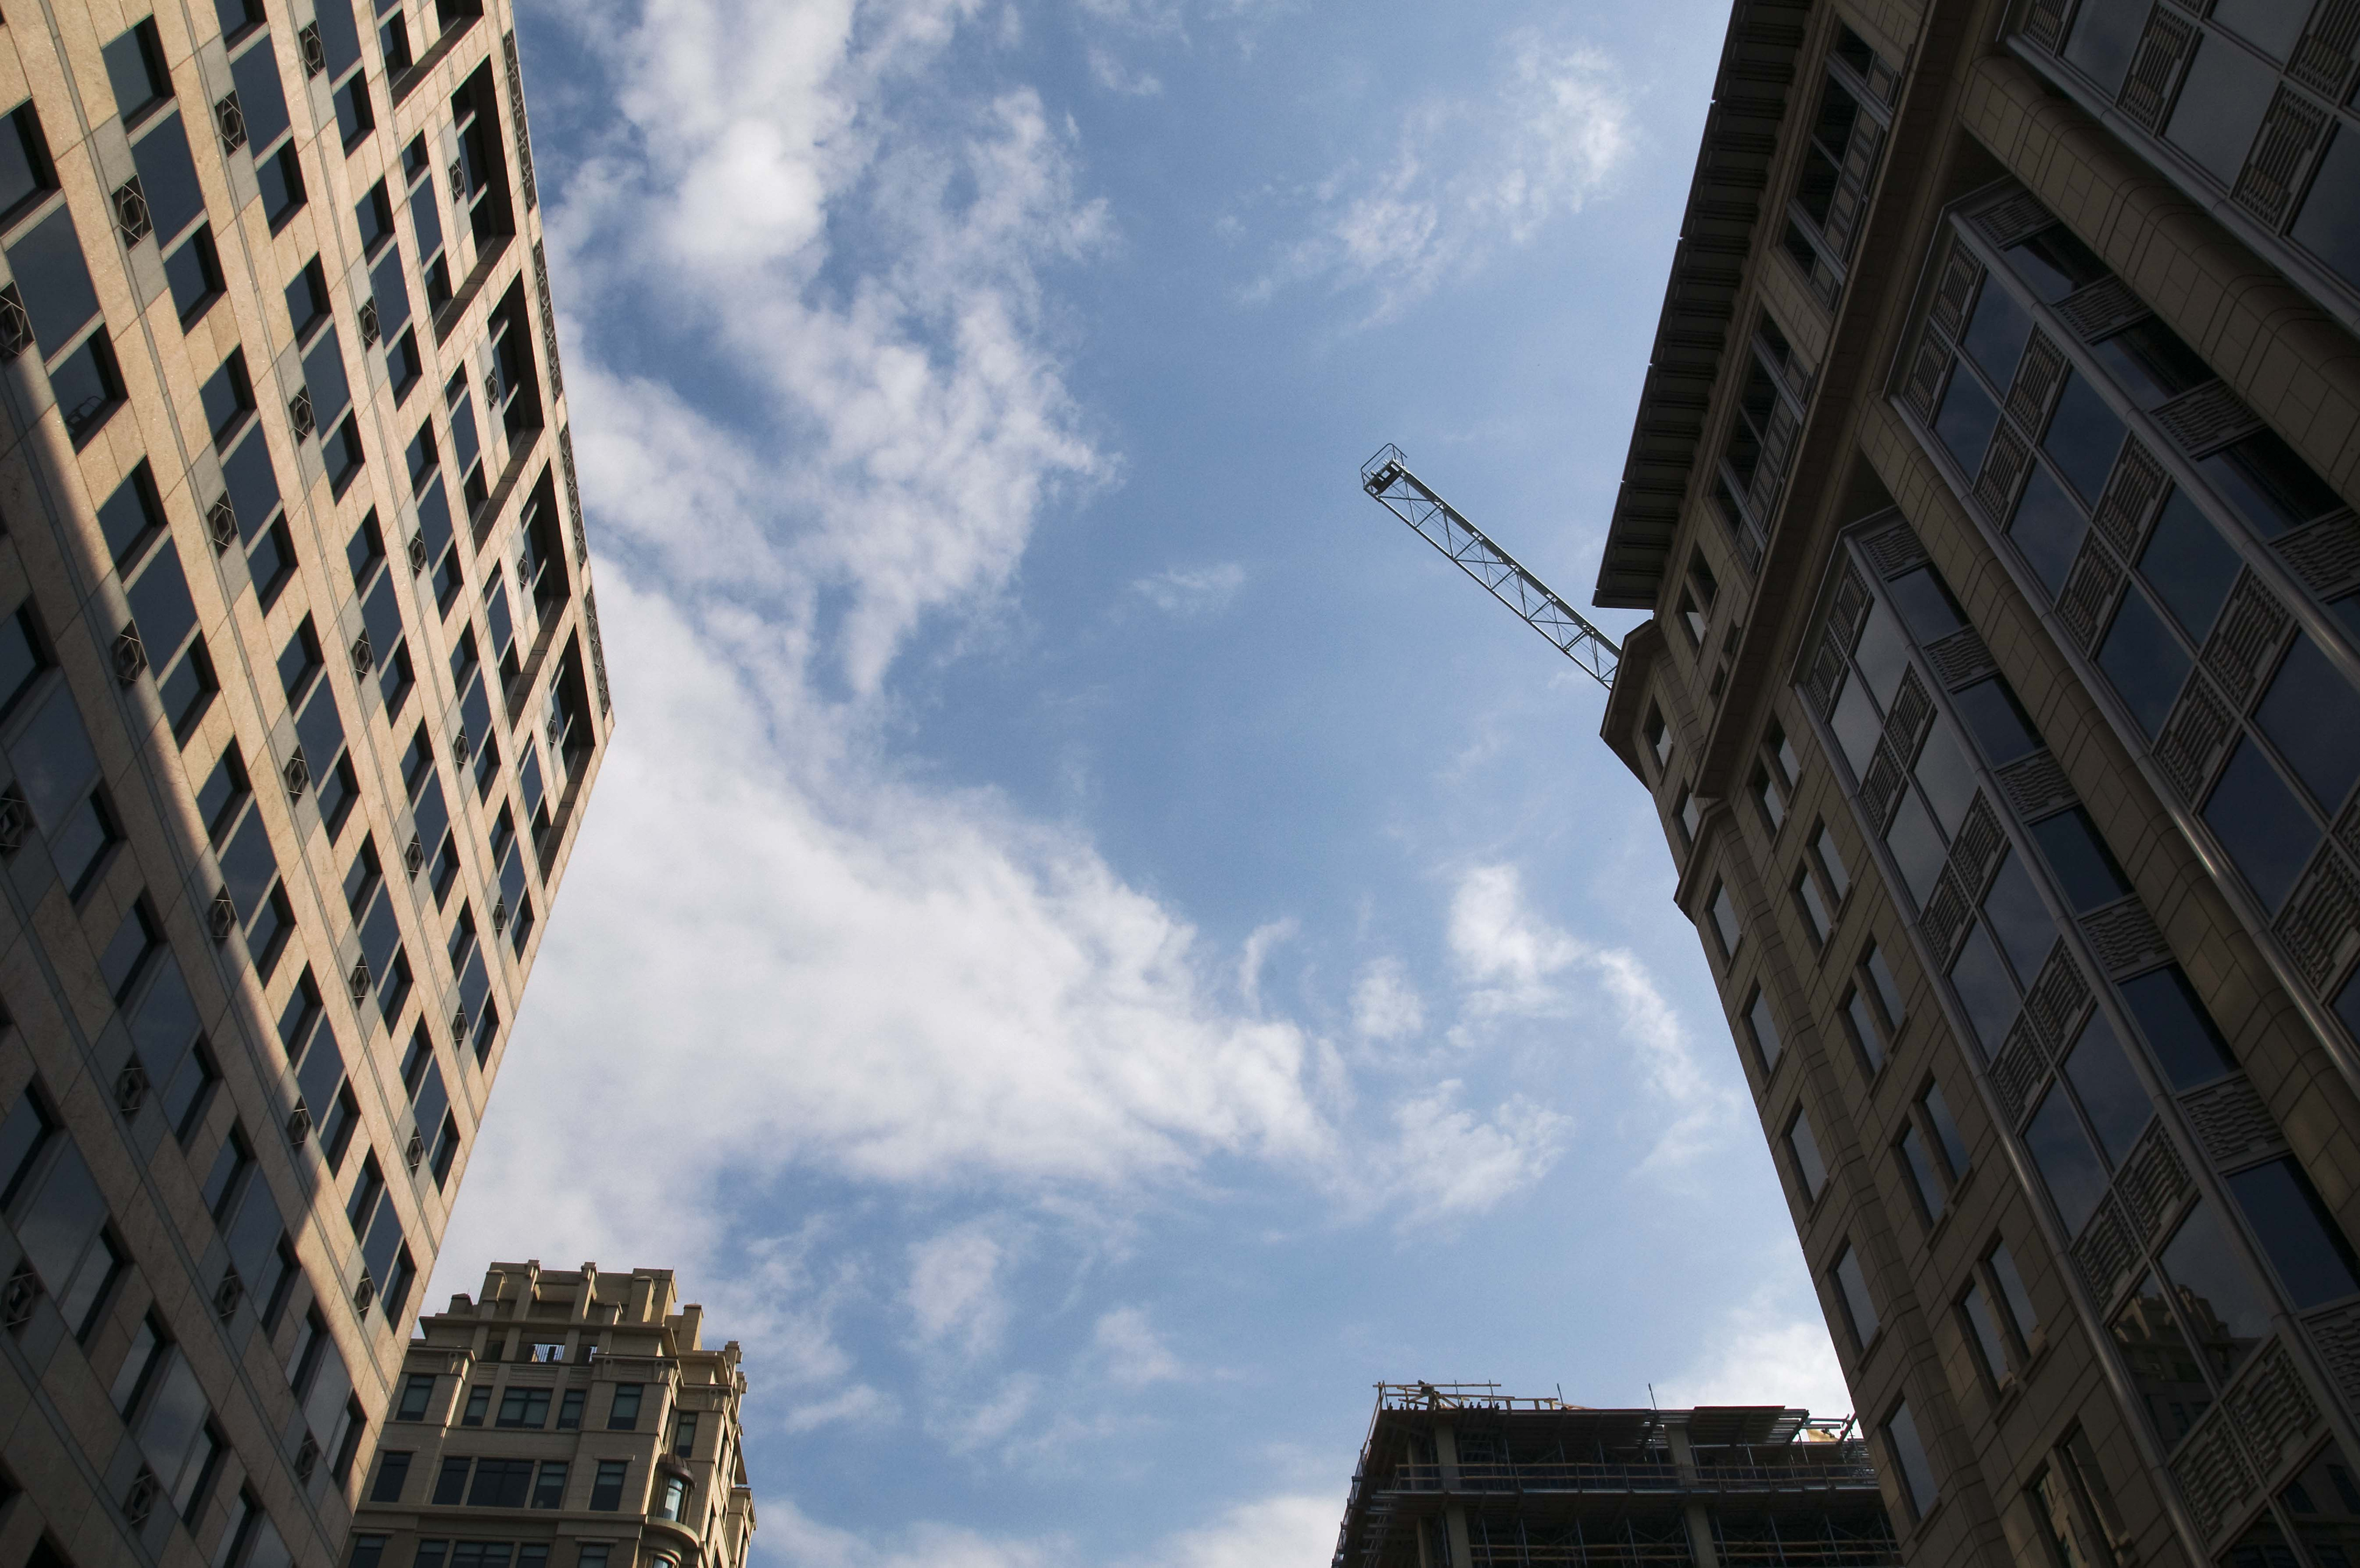 A sky shot of buildings in Washington, D.C. A crane is seen above one of the buildings.